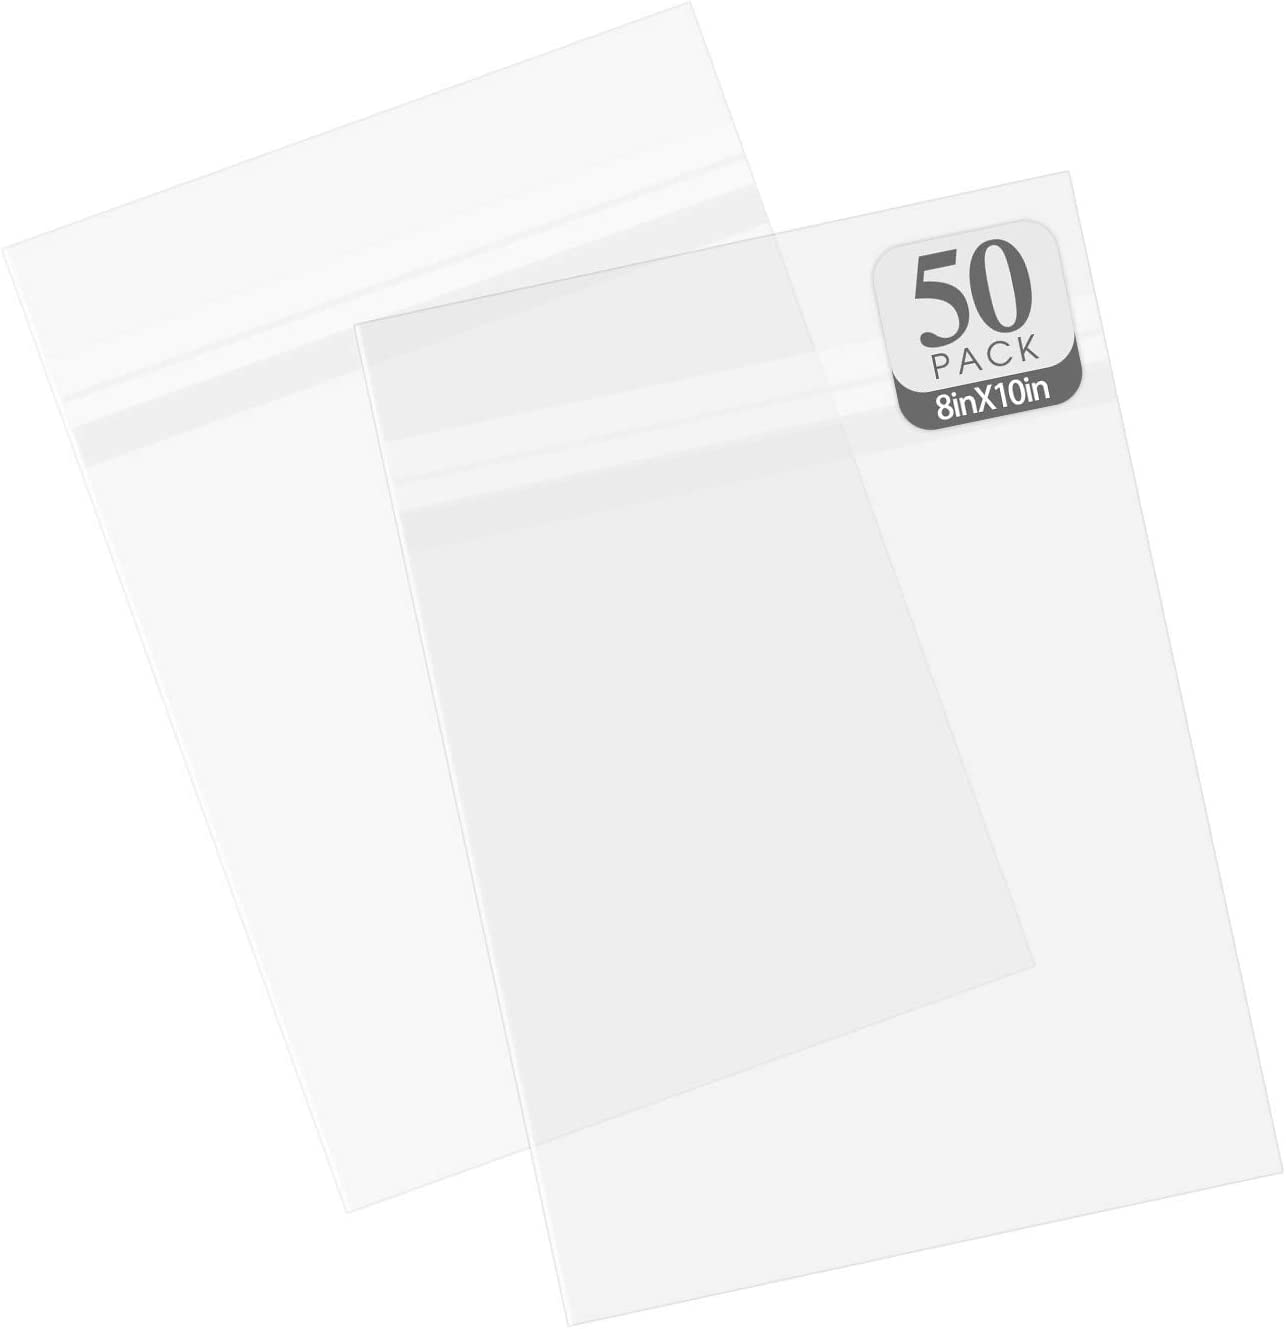 Golden State Art, Pack of 50 Acid-Free Crystal Clear Sleeves Storage Bags for Framing Mats Mattes (8 3/8 x 10 1/8 inches)